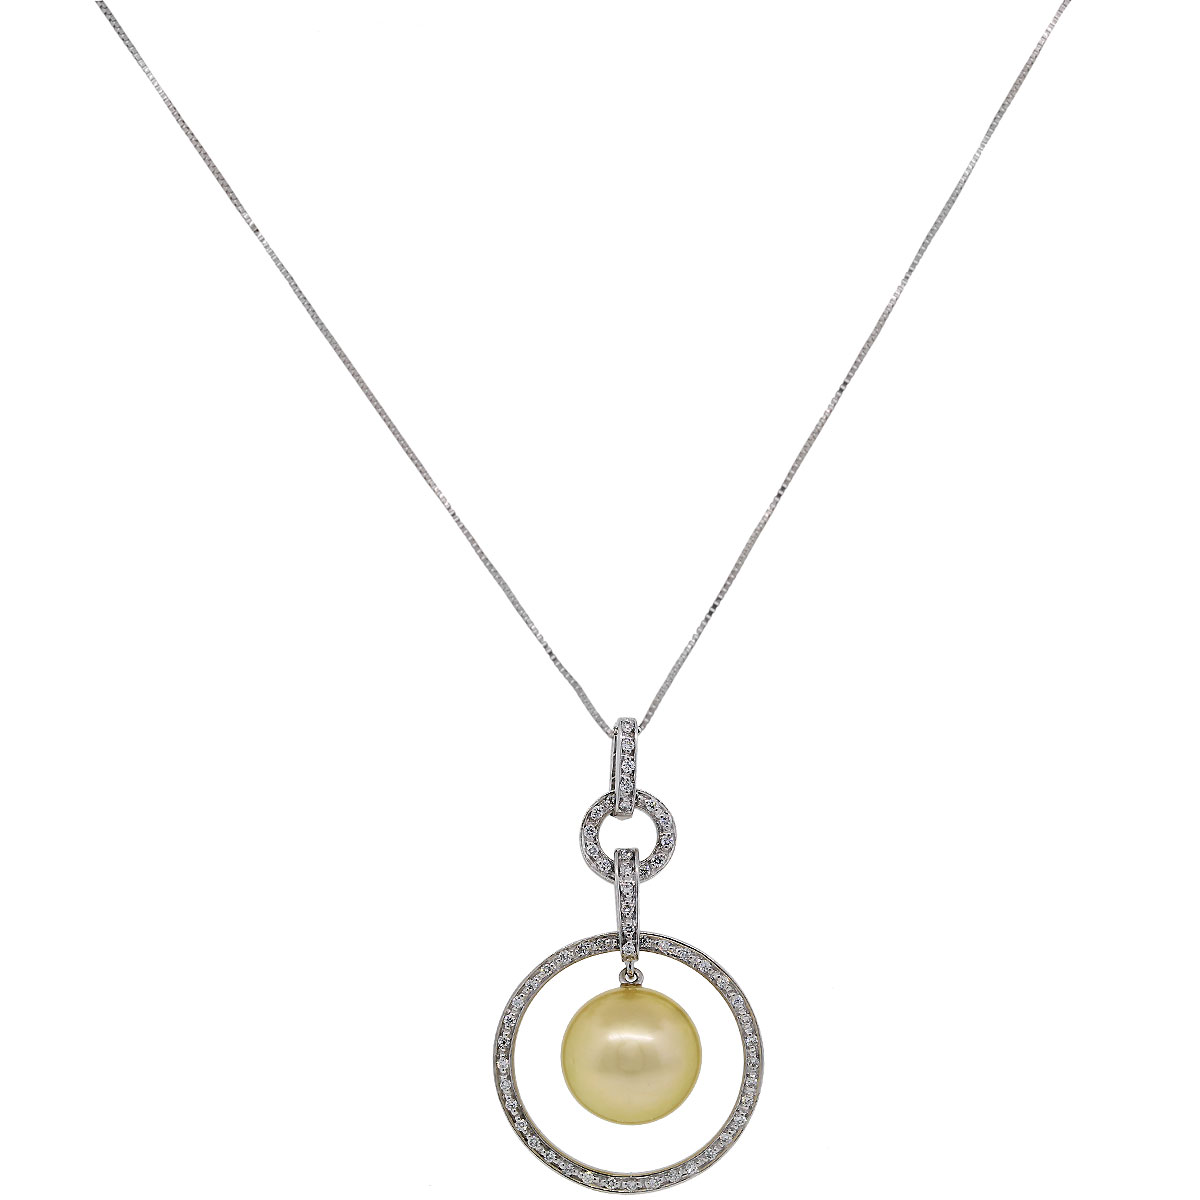 Diamond and Pearl Pendant Necklace